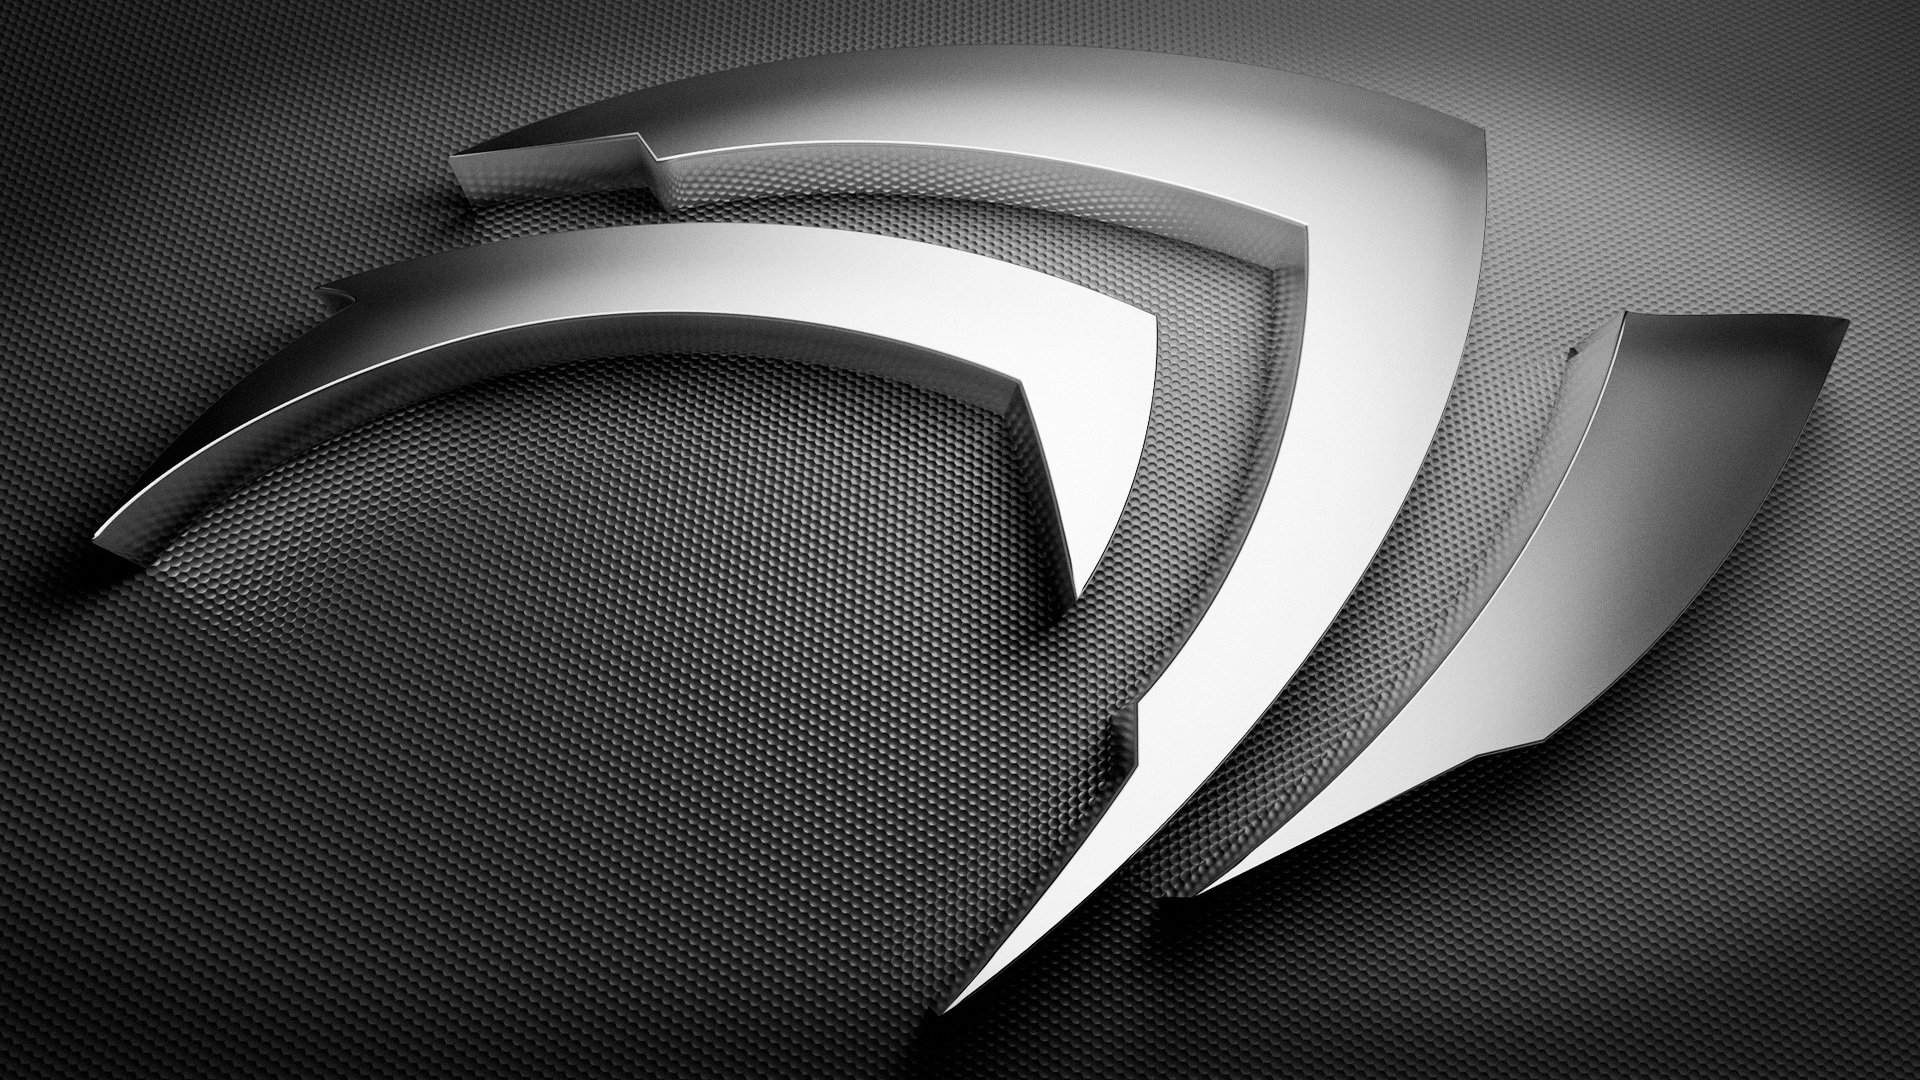 Free Download 3d Wallpapers Backgrounds Nvidia Metallic Hd Images, Photos, Reviews